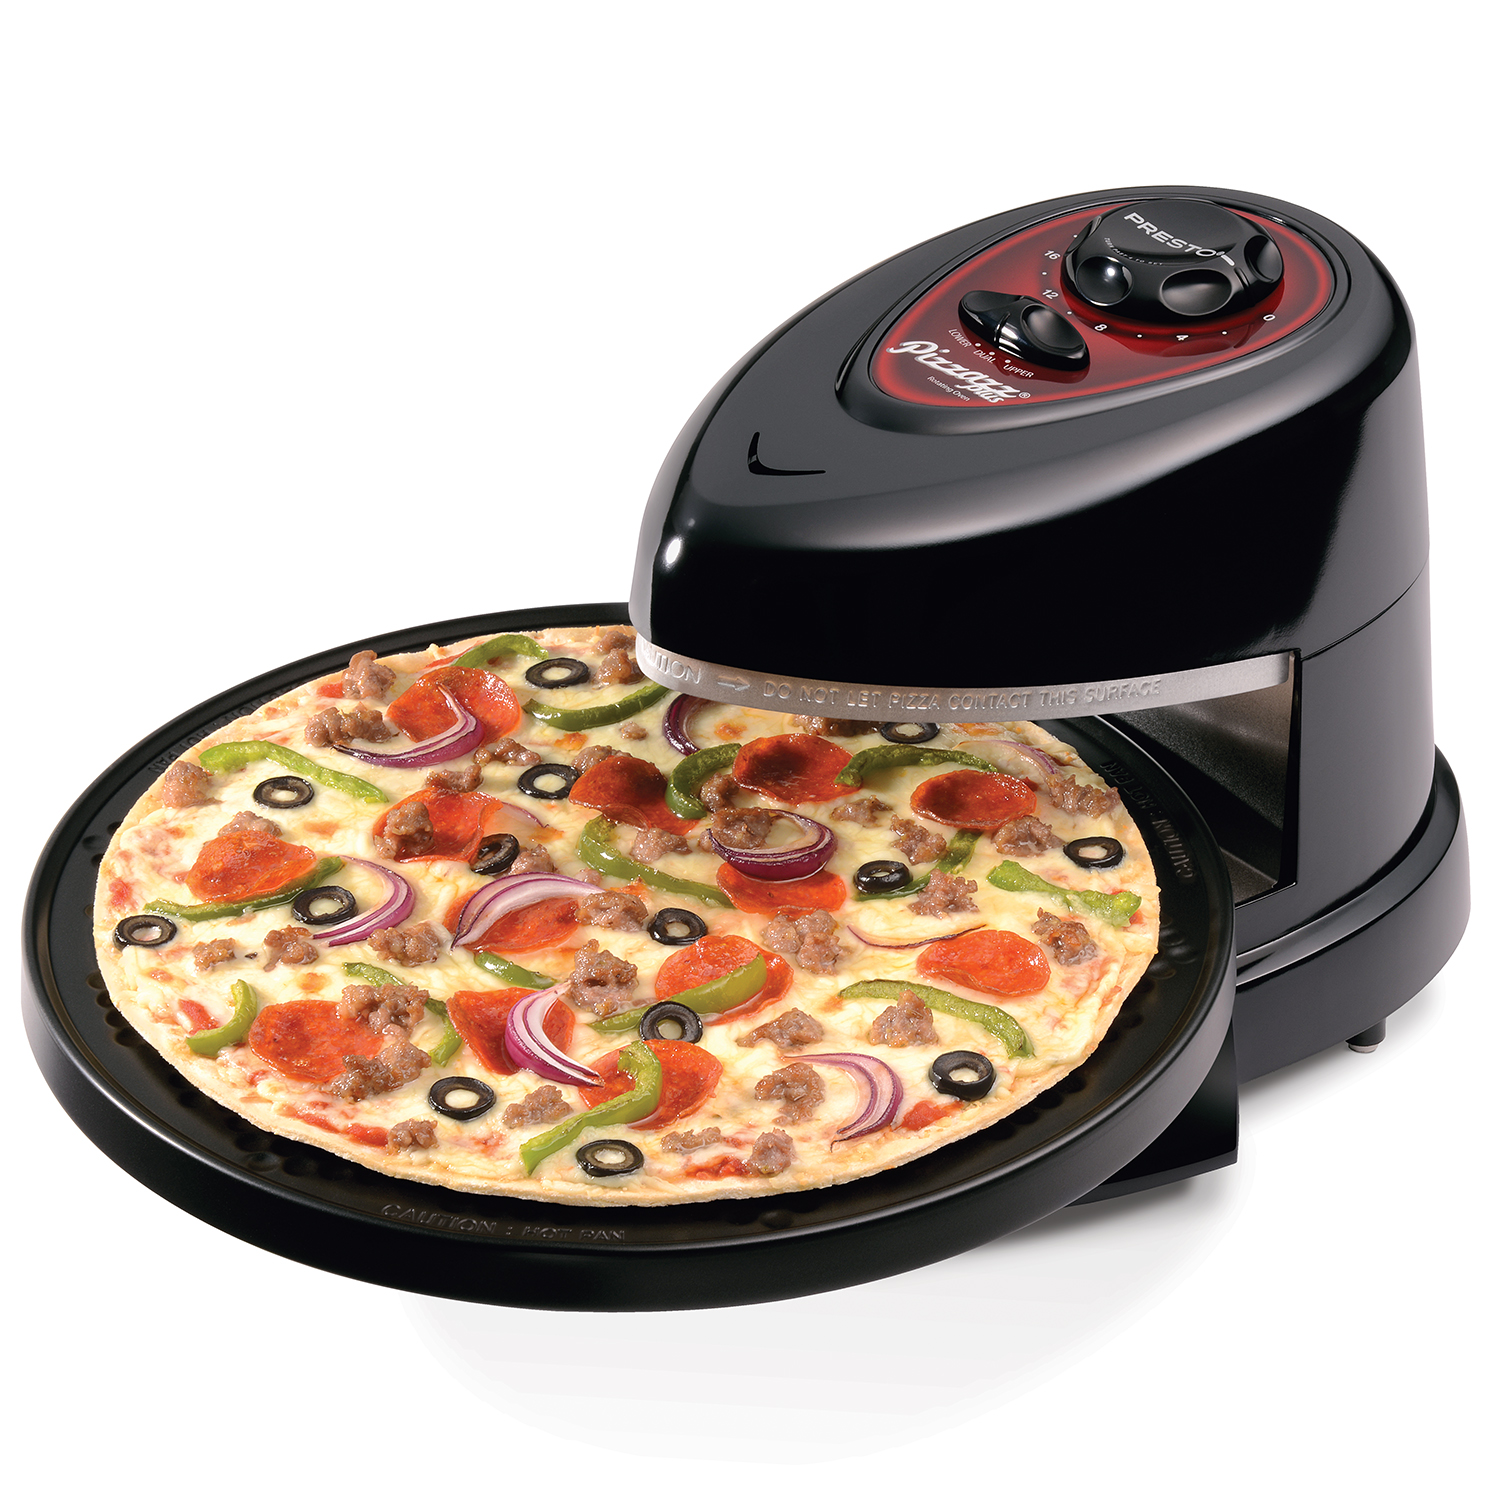 Presto Pizzazz® Plus rotating pizza oven